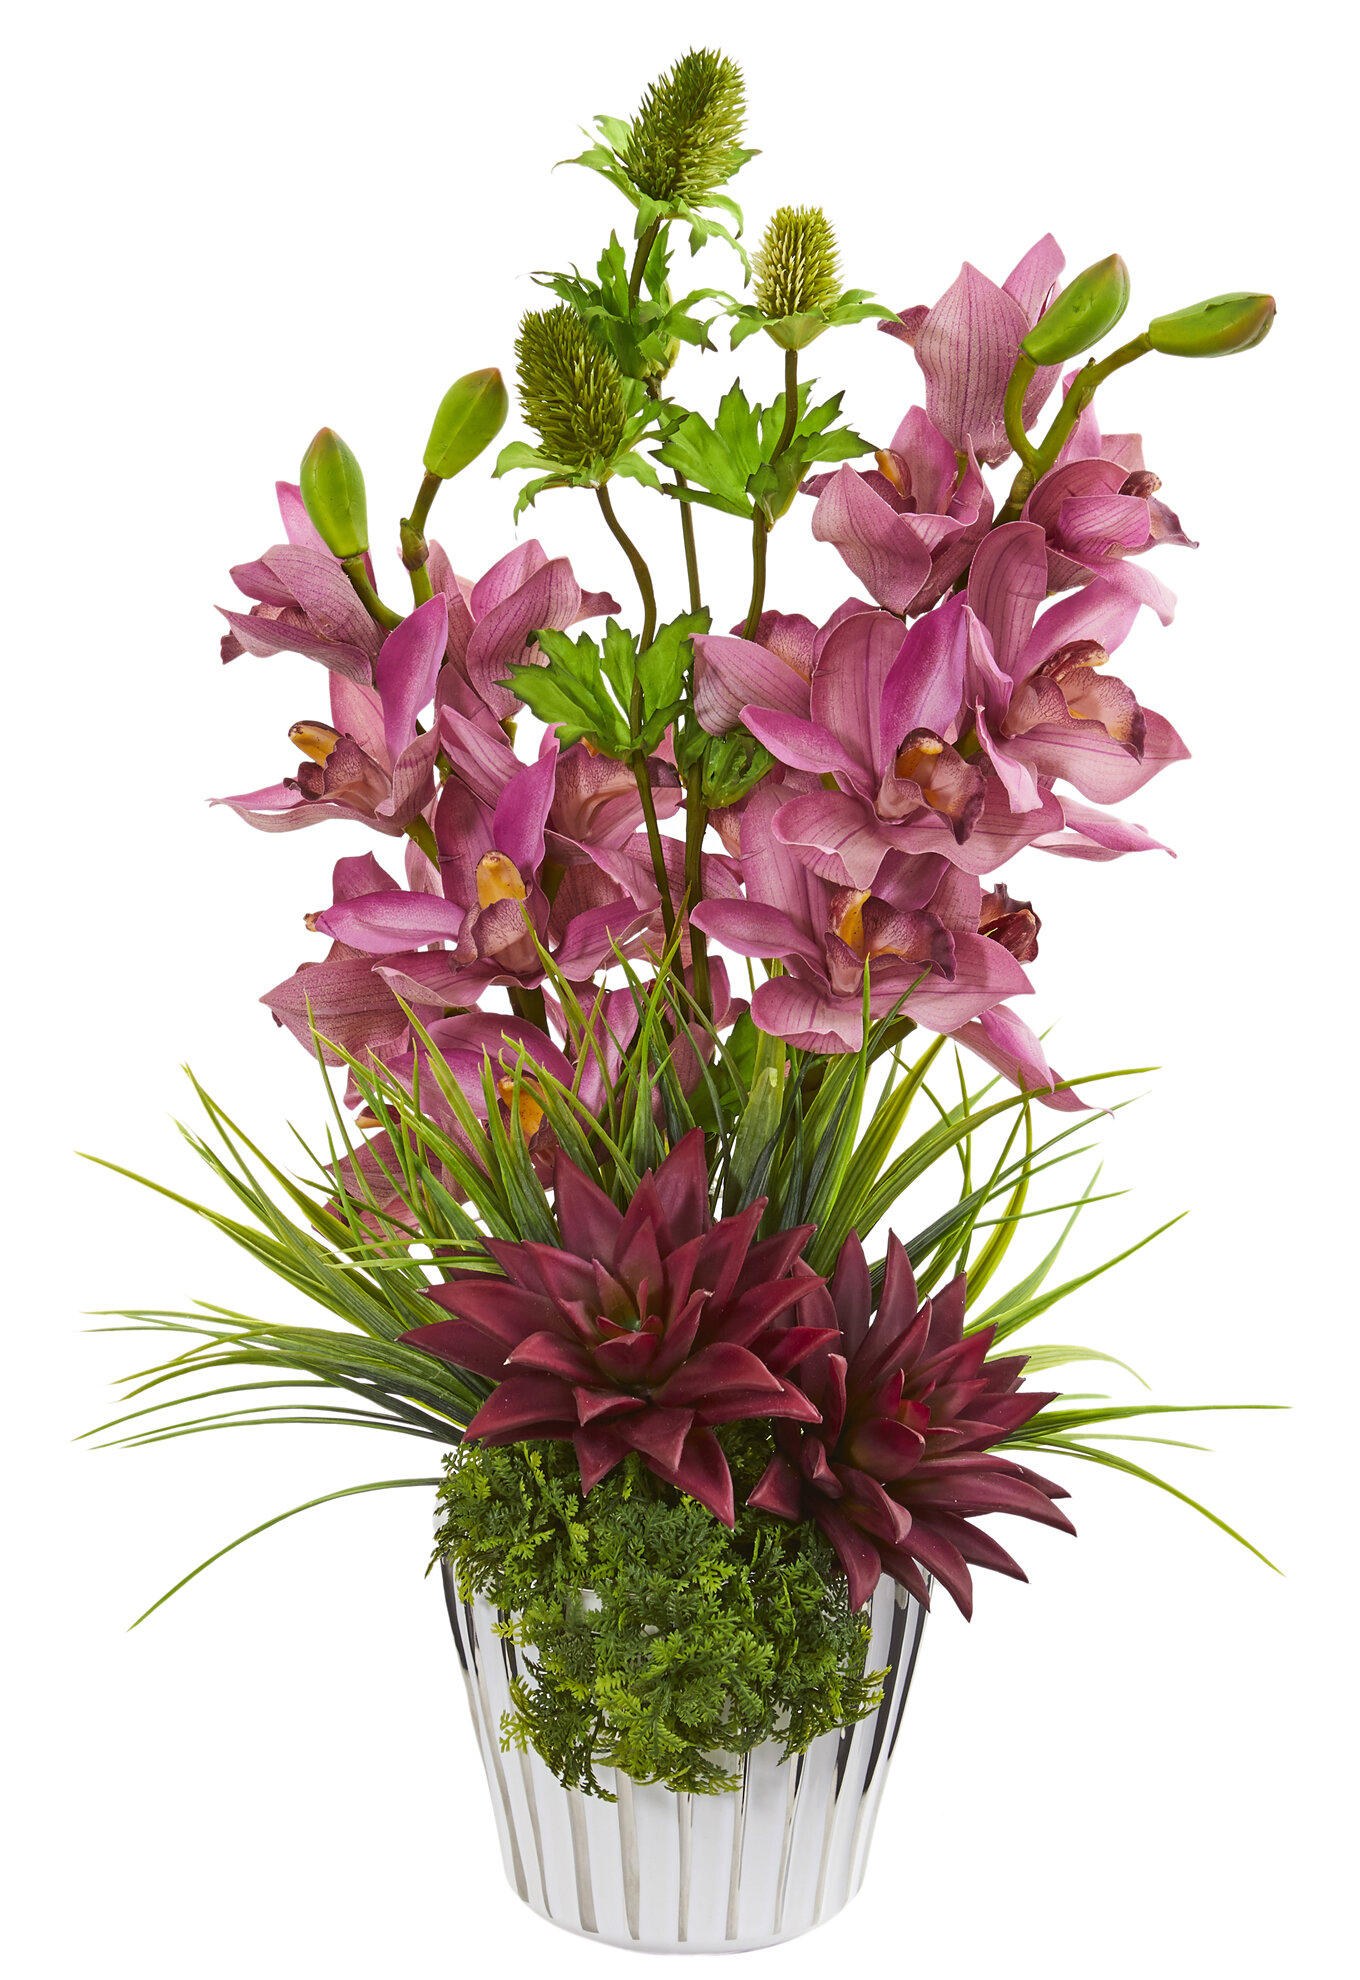 Wrought Studio Cymbidium Orchid Agave And Thistle Artificial Mixed Floral Arrangement In Vase Wayfair